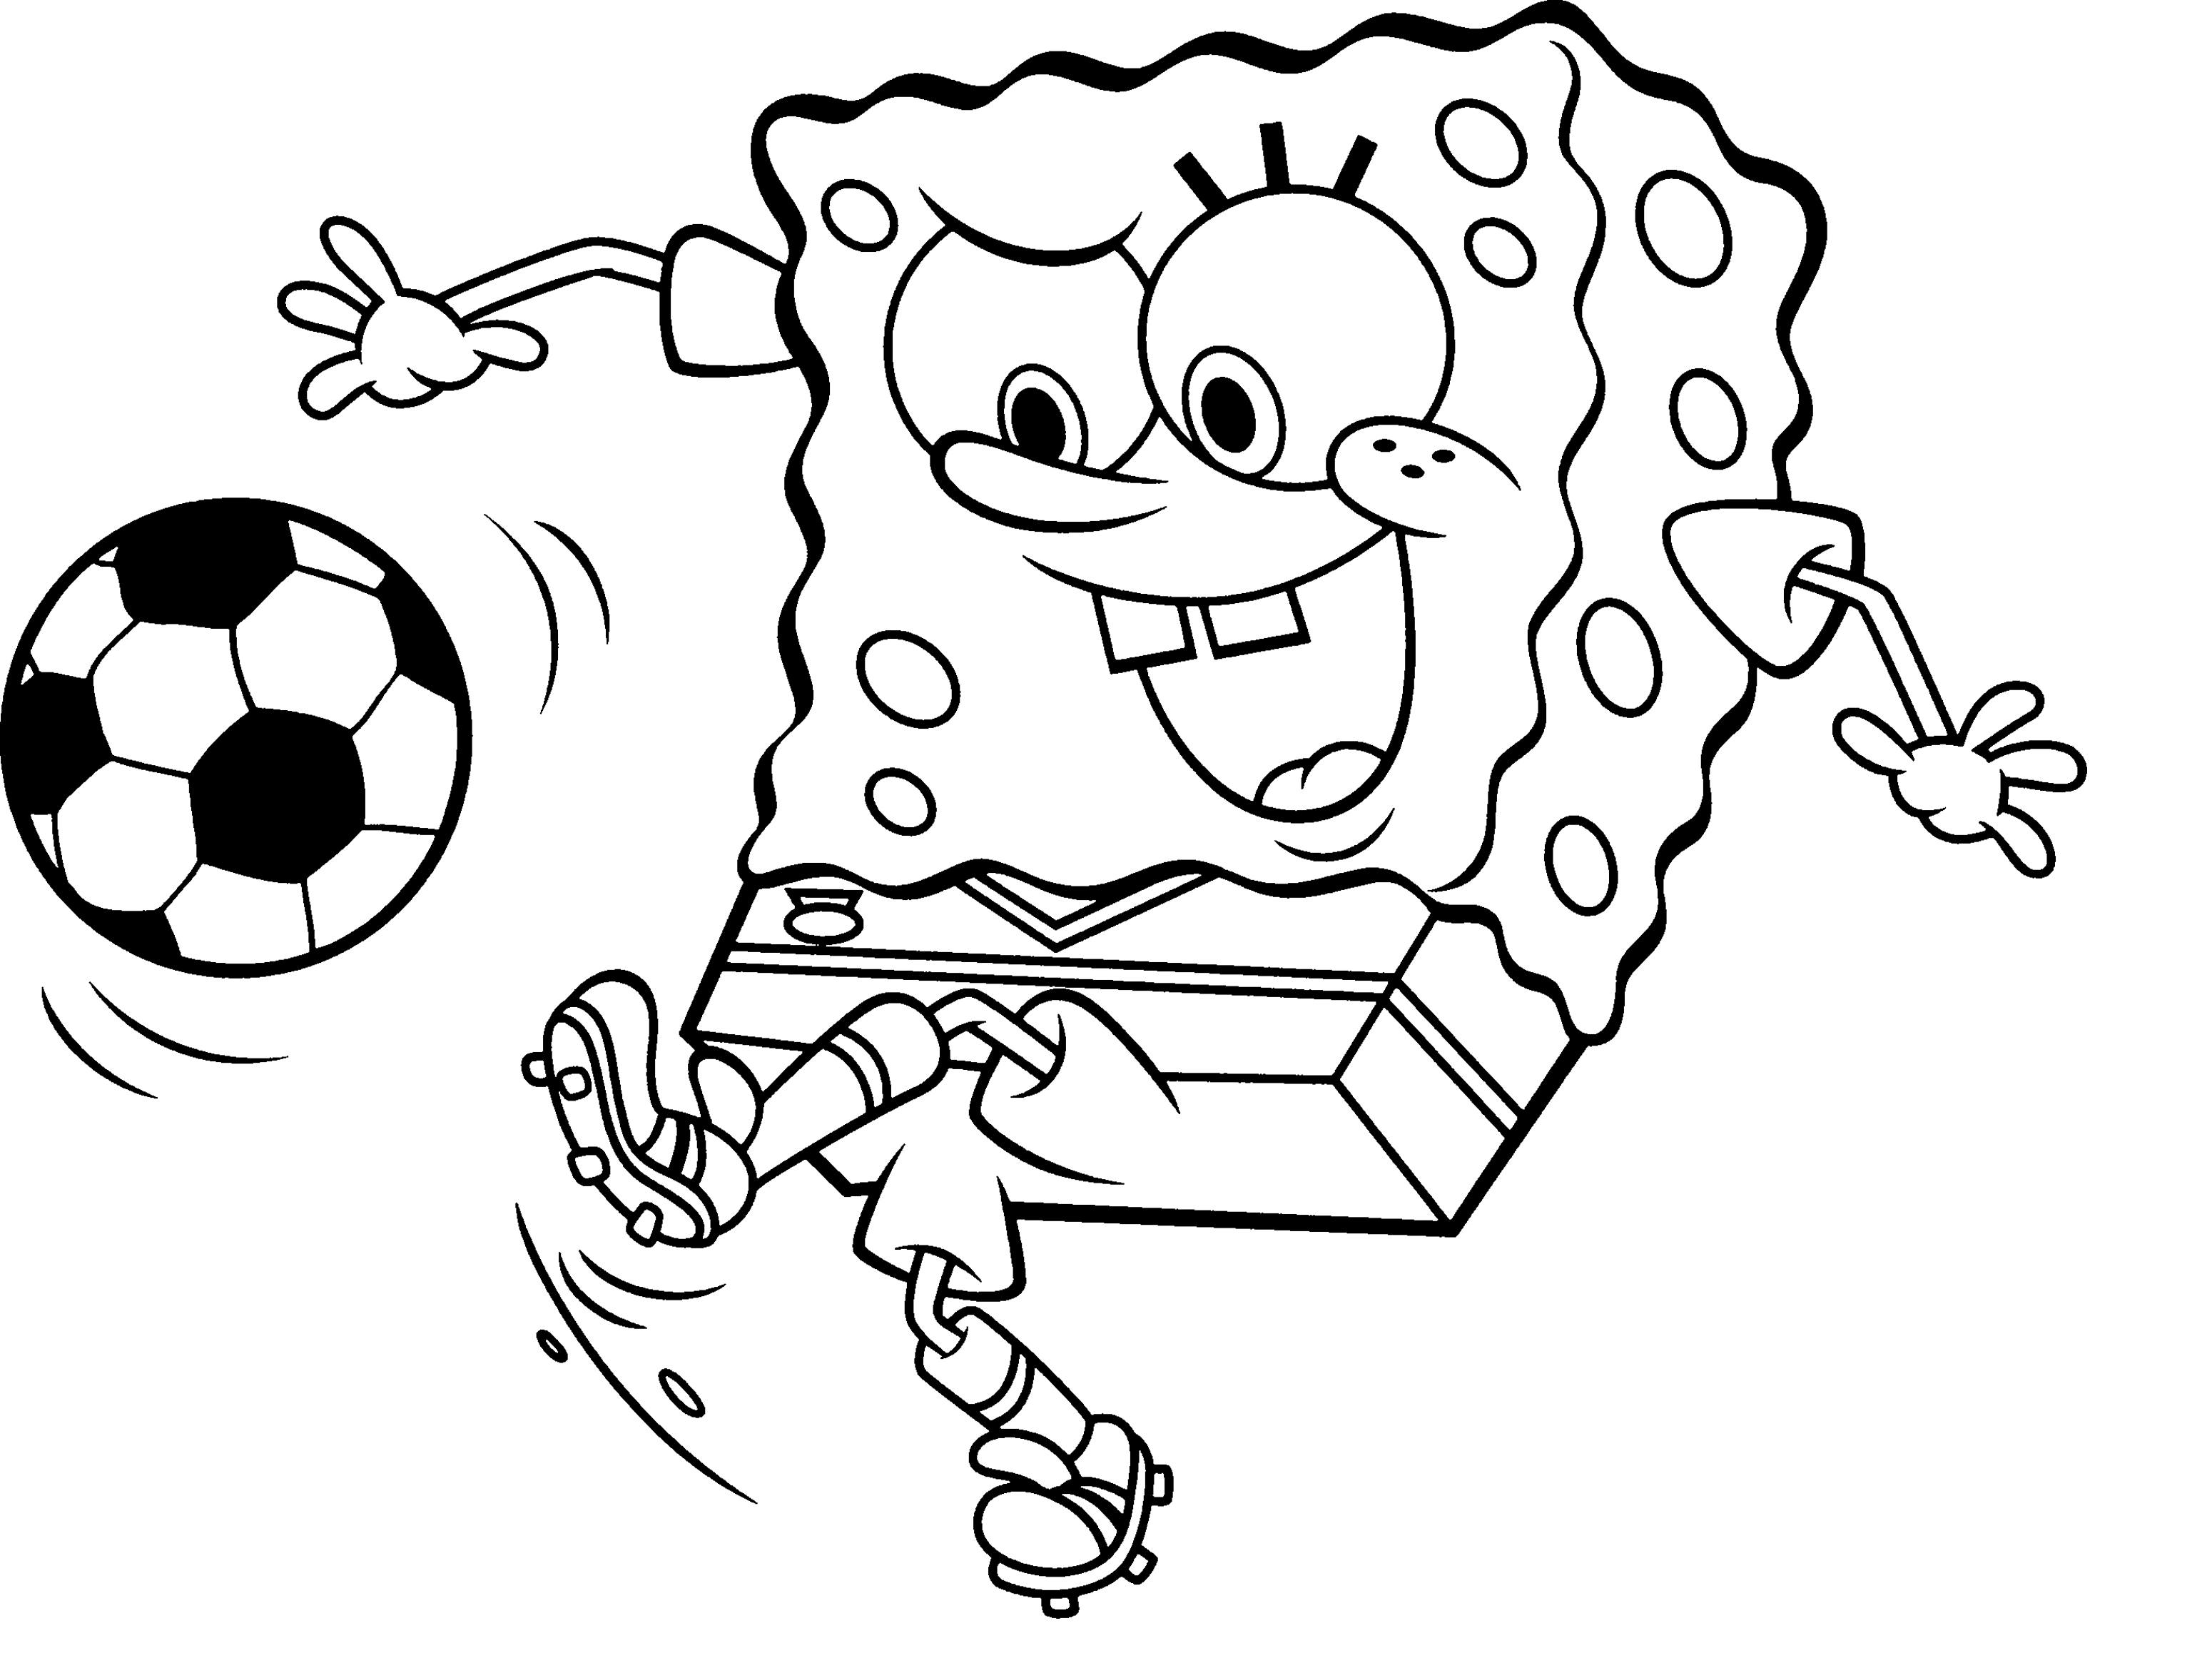 3100x2344 Selected Football Coloring Pages Printable Qqa Me In Sharry